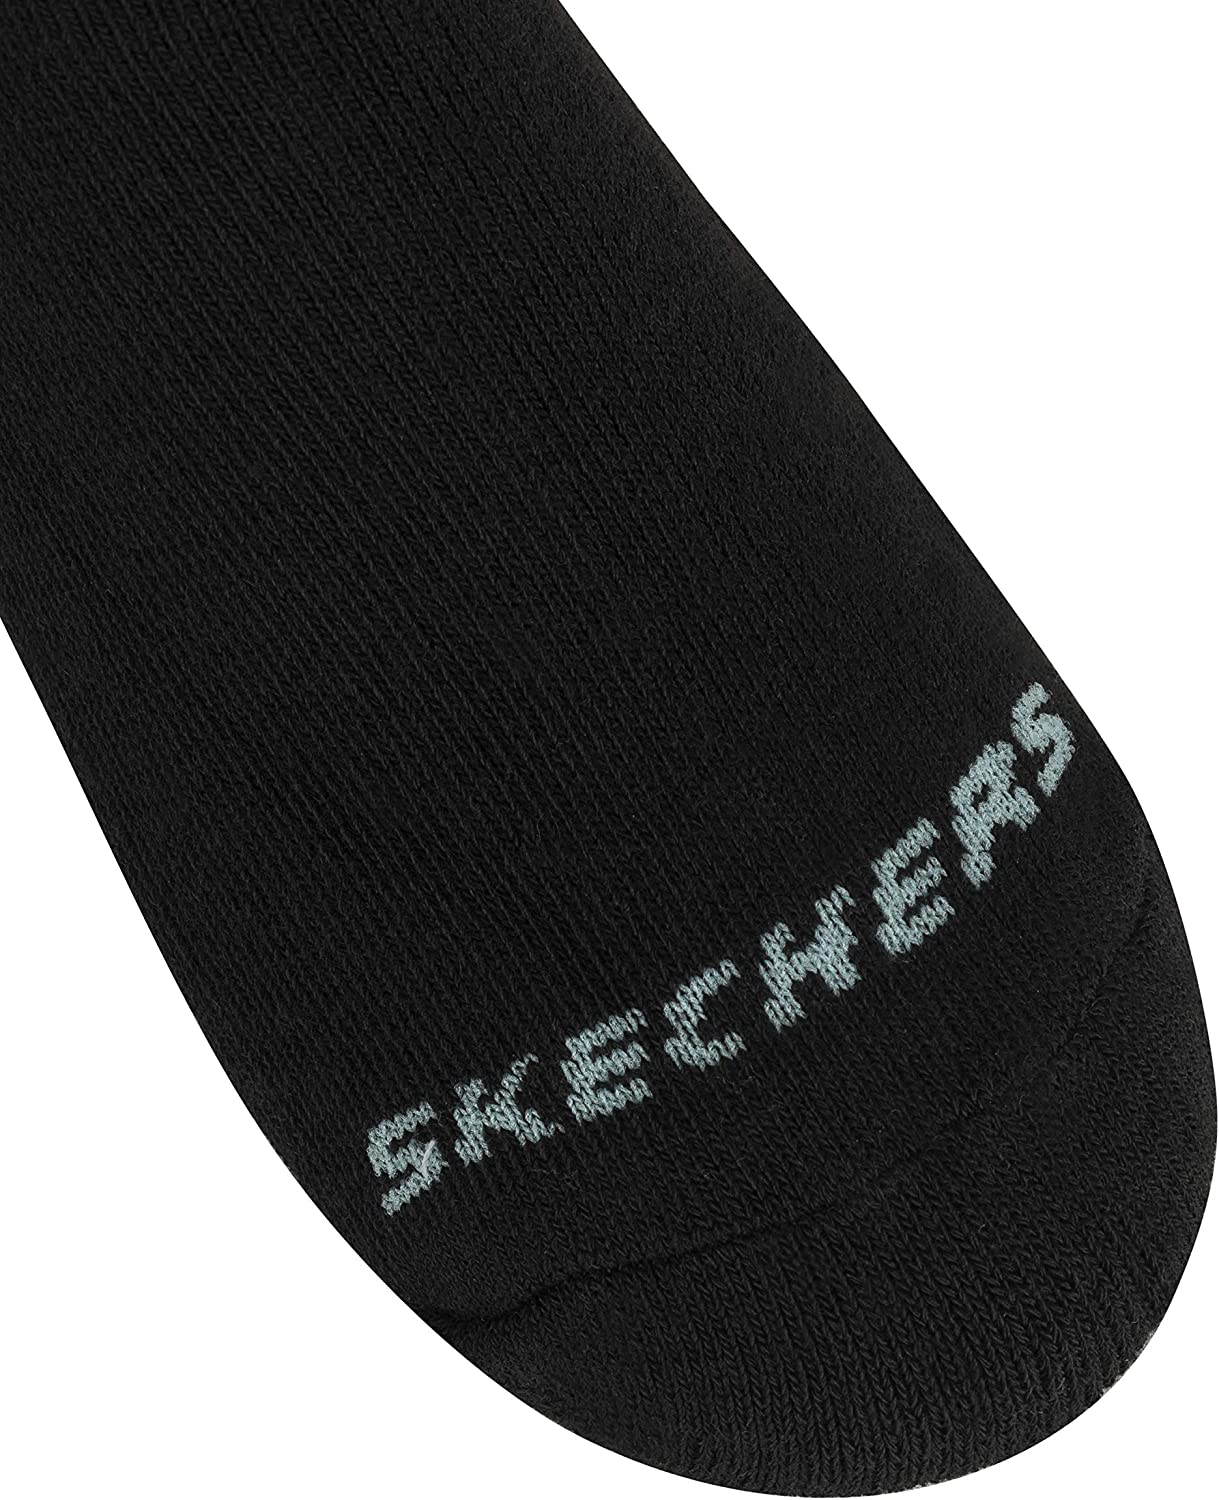 Skechers girls 10 Pack No Show Socks: Clothing, Shoes & Jewelry